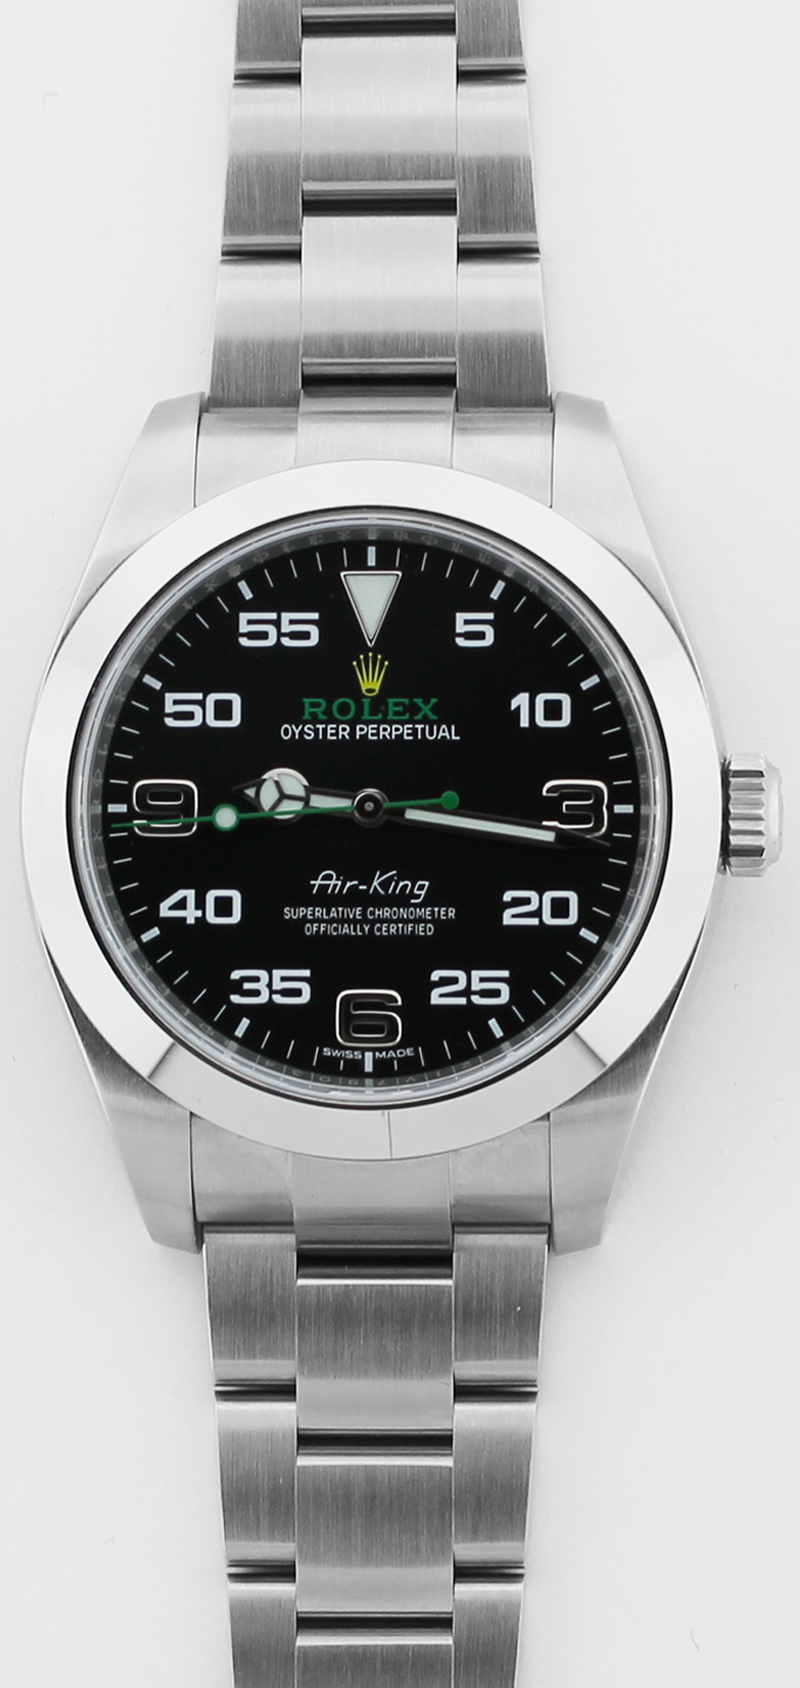 Rolex Steel Air-King 116900 with Warranty Card Box & Booklets